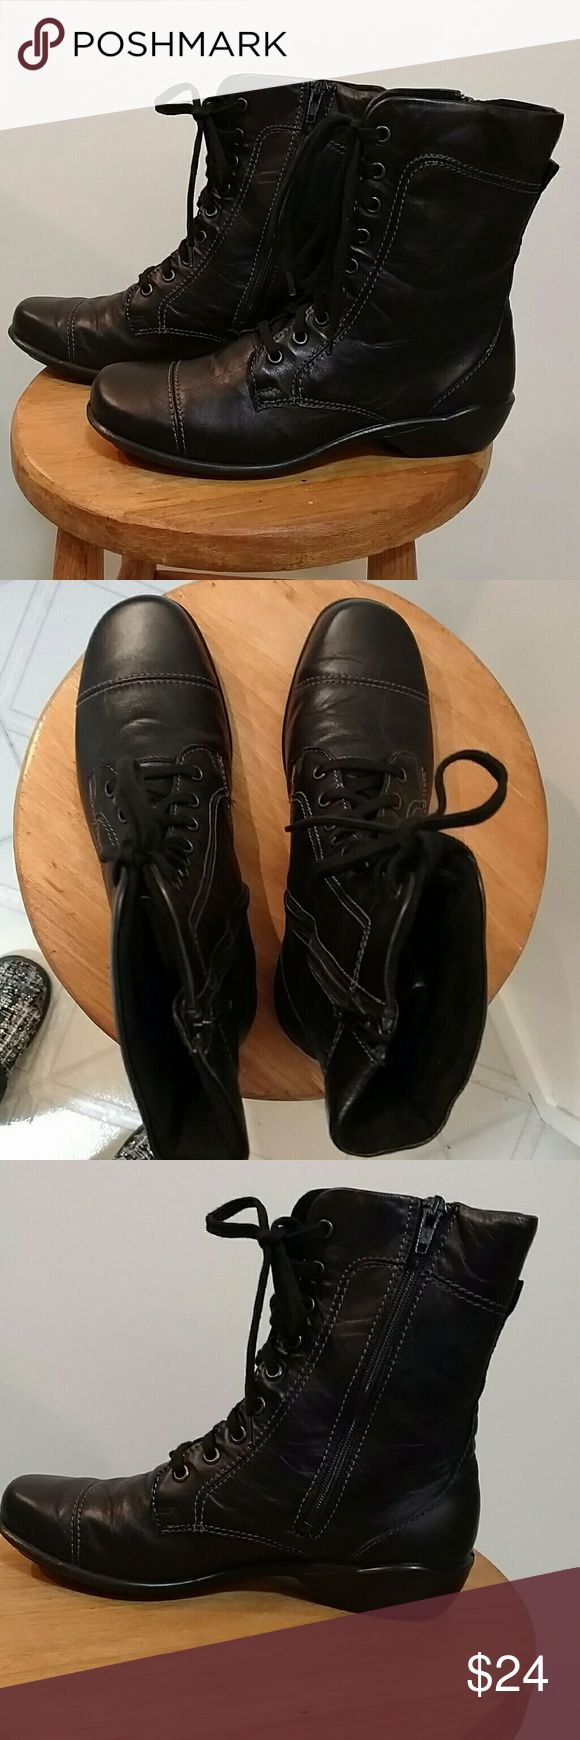 Romika Citylight boots size 38 New in box,  black leather combat boots. Inside zip and lace up front. Romika Shoes Combat & Moto Boots